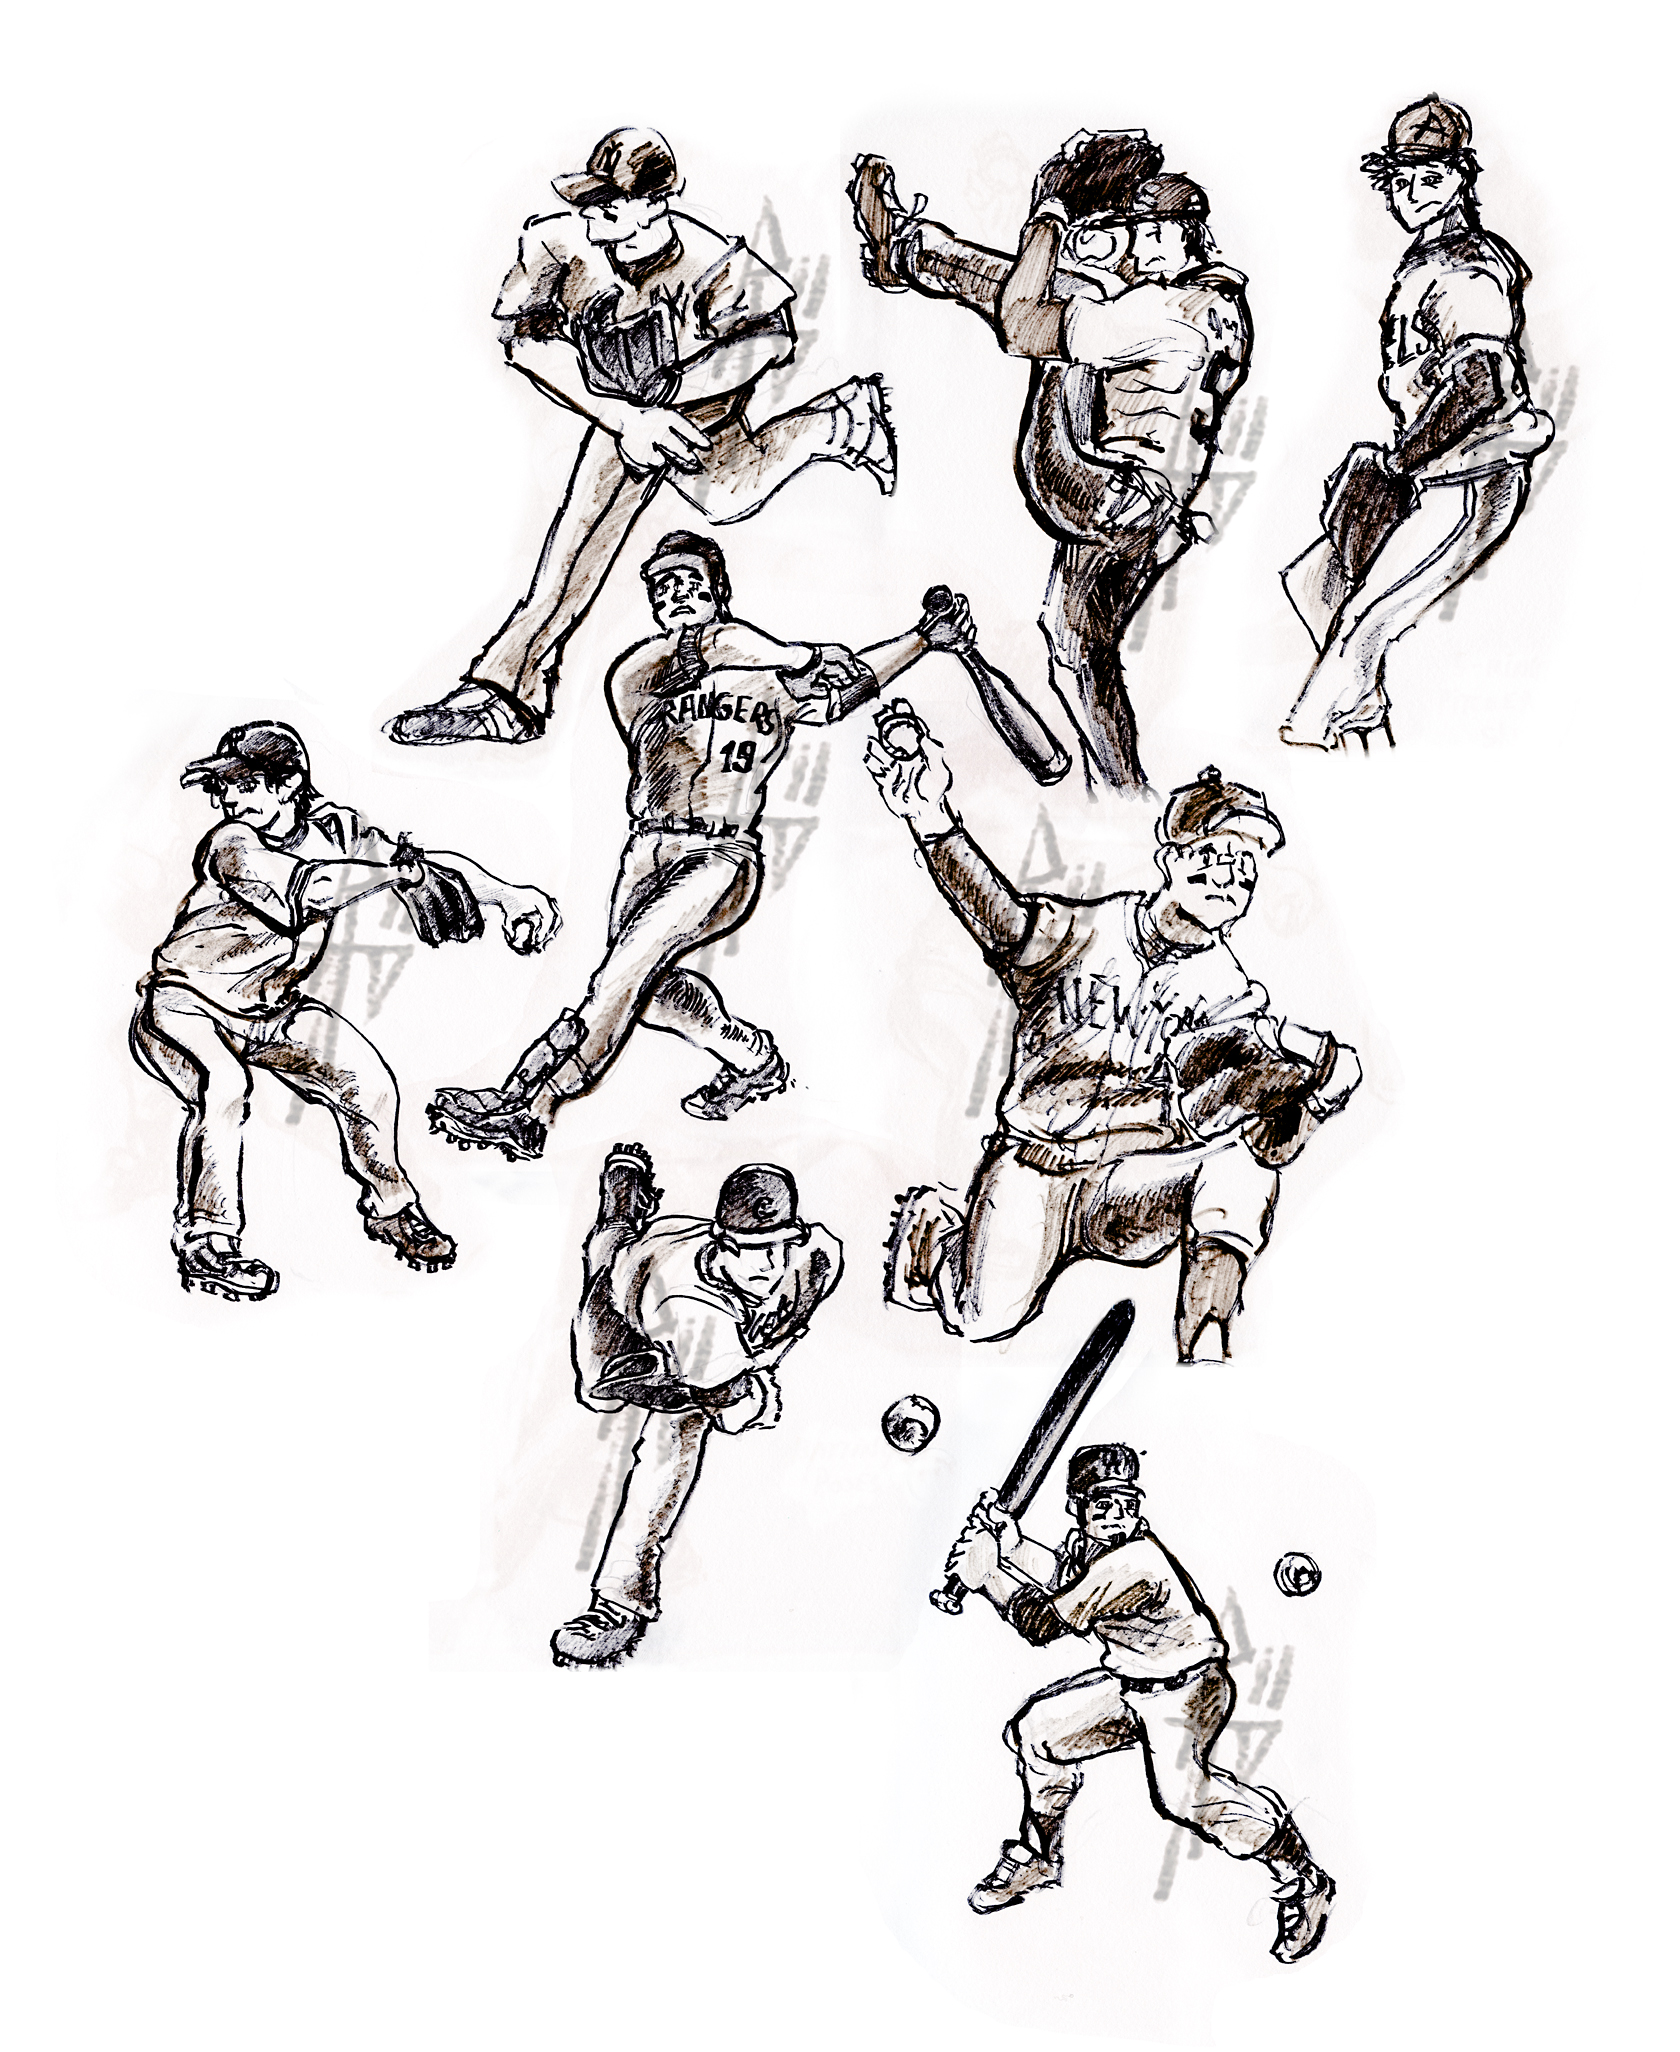 Uncategorized How To Draw A Baseball Pitcher gestures click